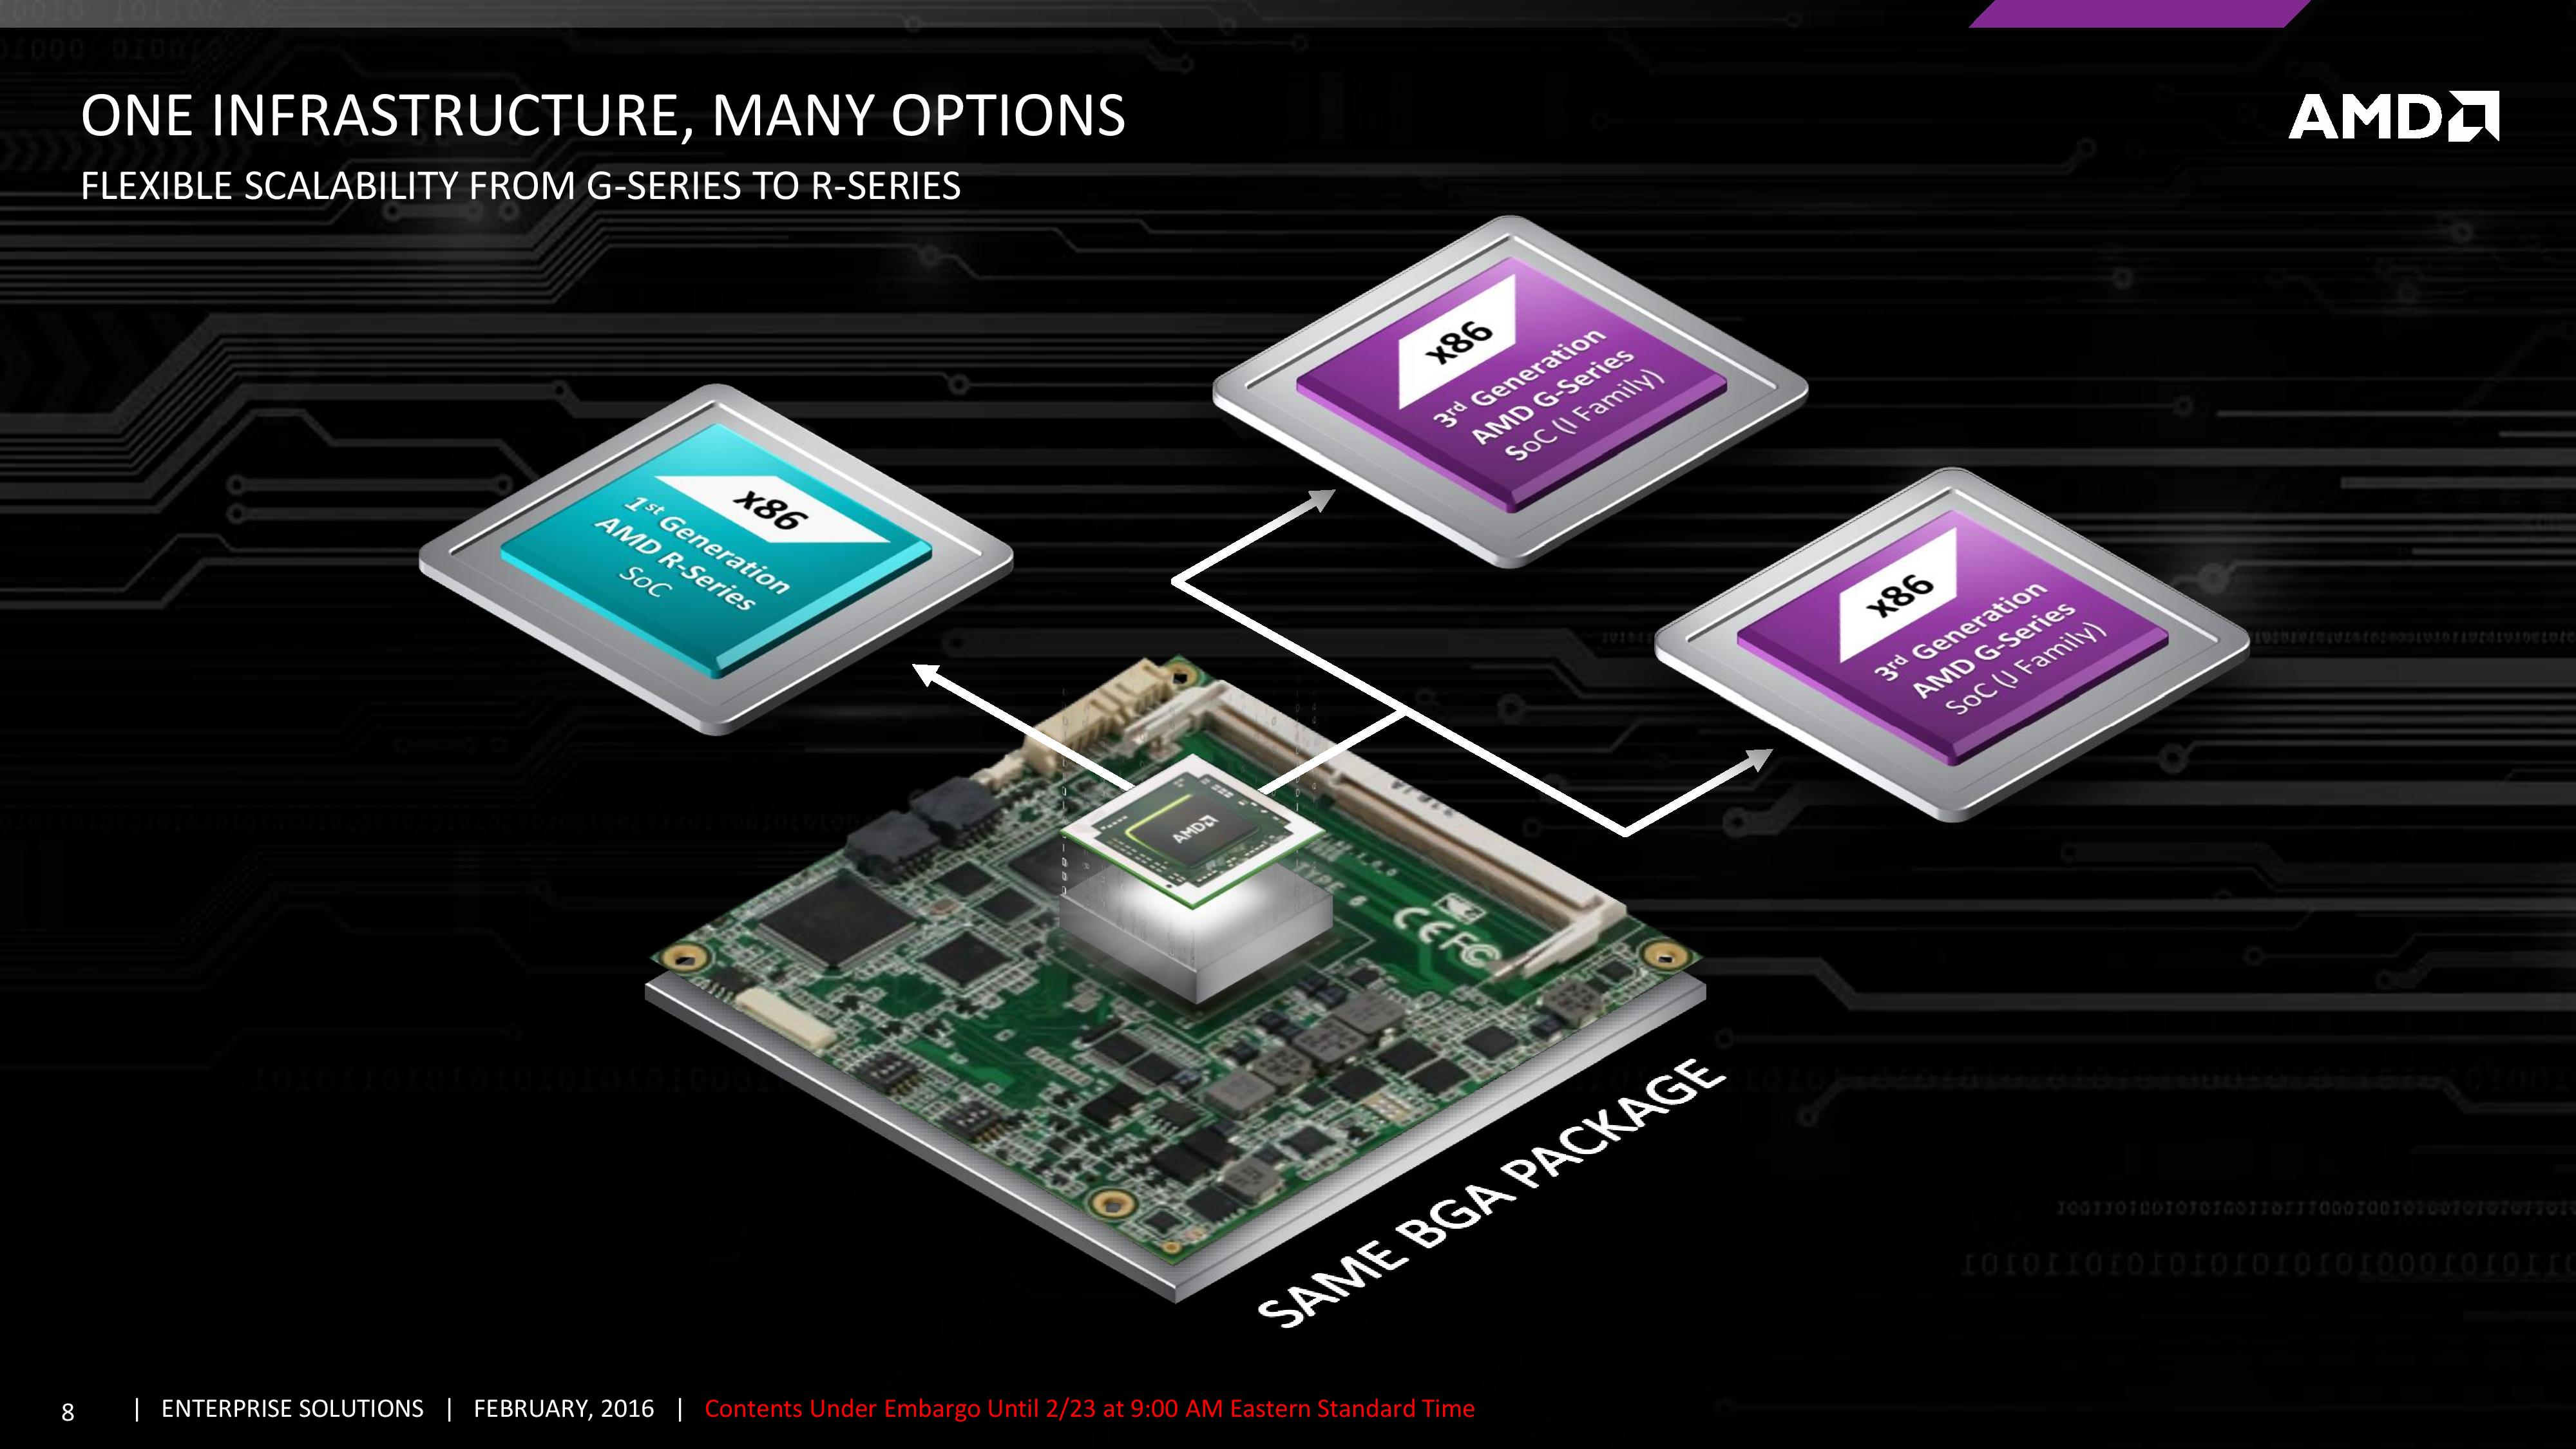 AMD Launches Excavator Architecture for G-Series ...